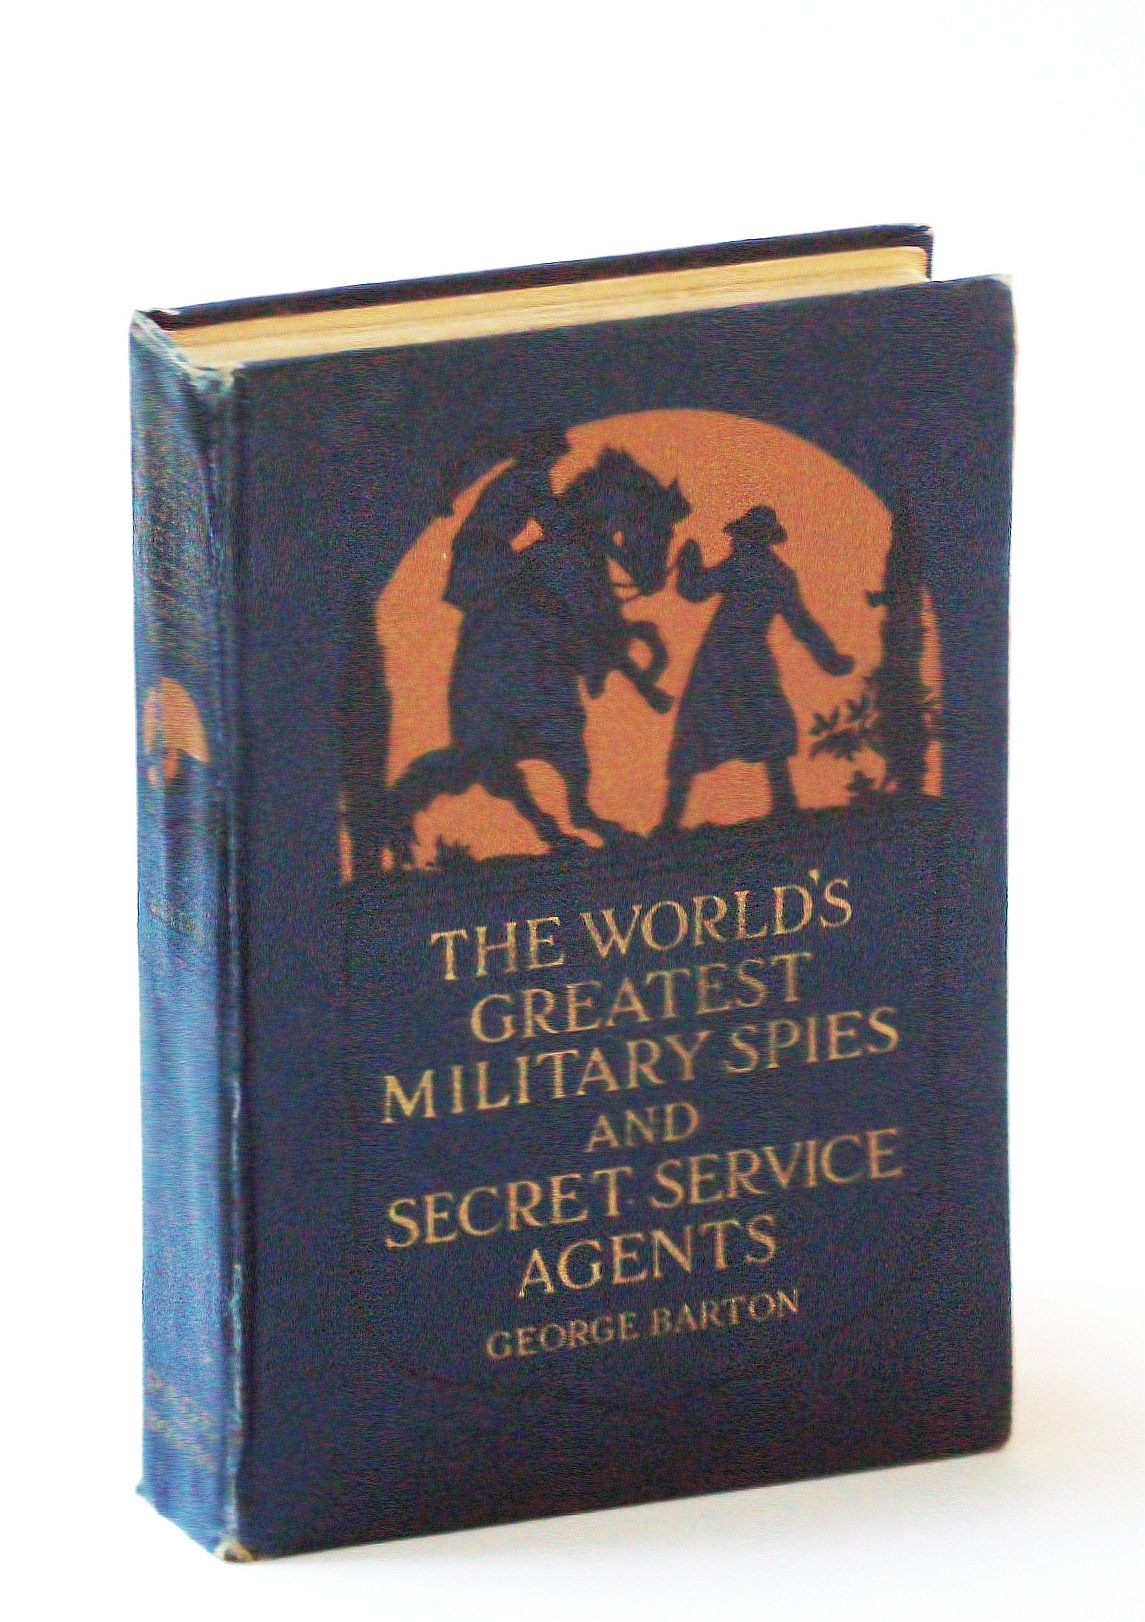 Image for The world's greatest military spies and secret service agents,